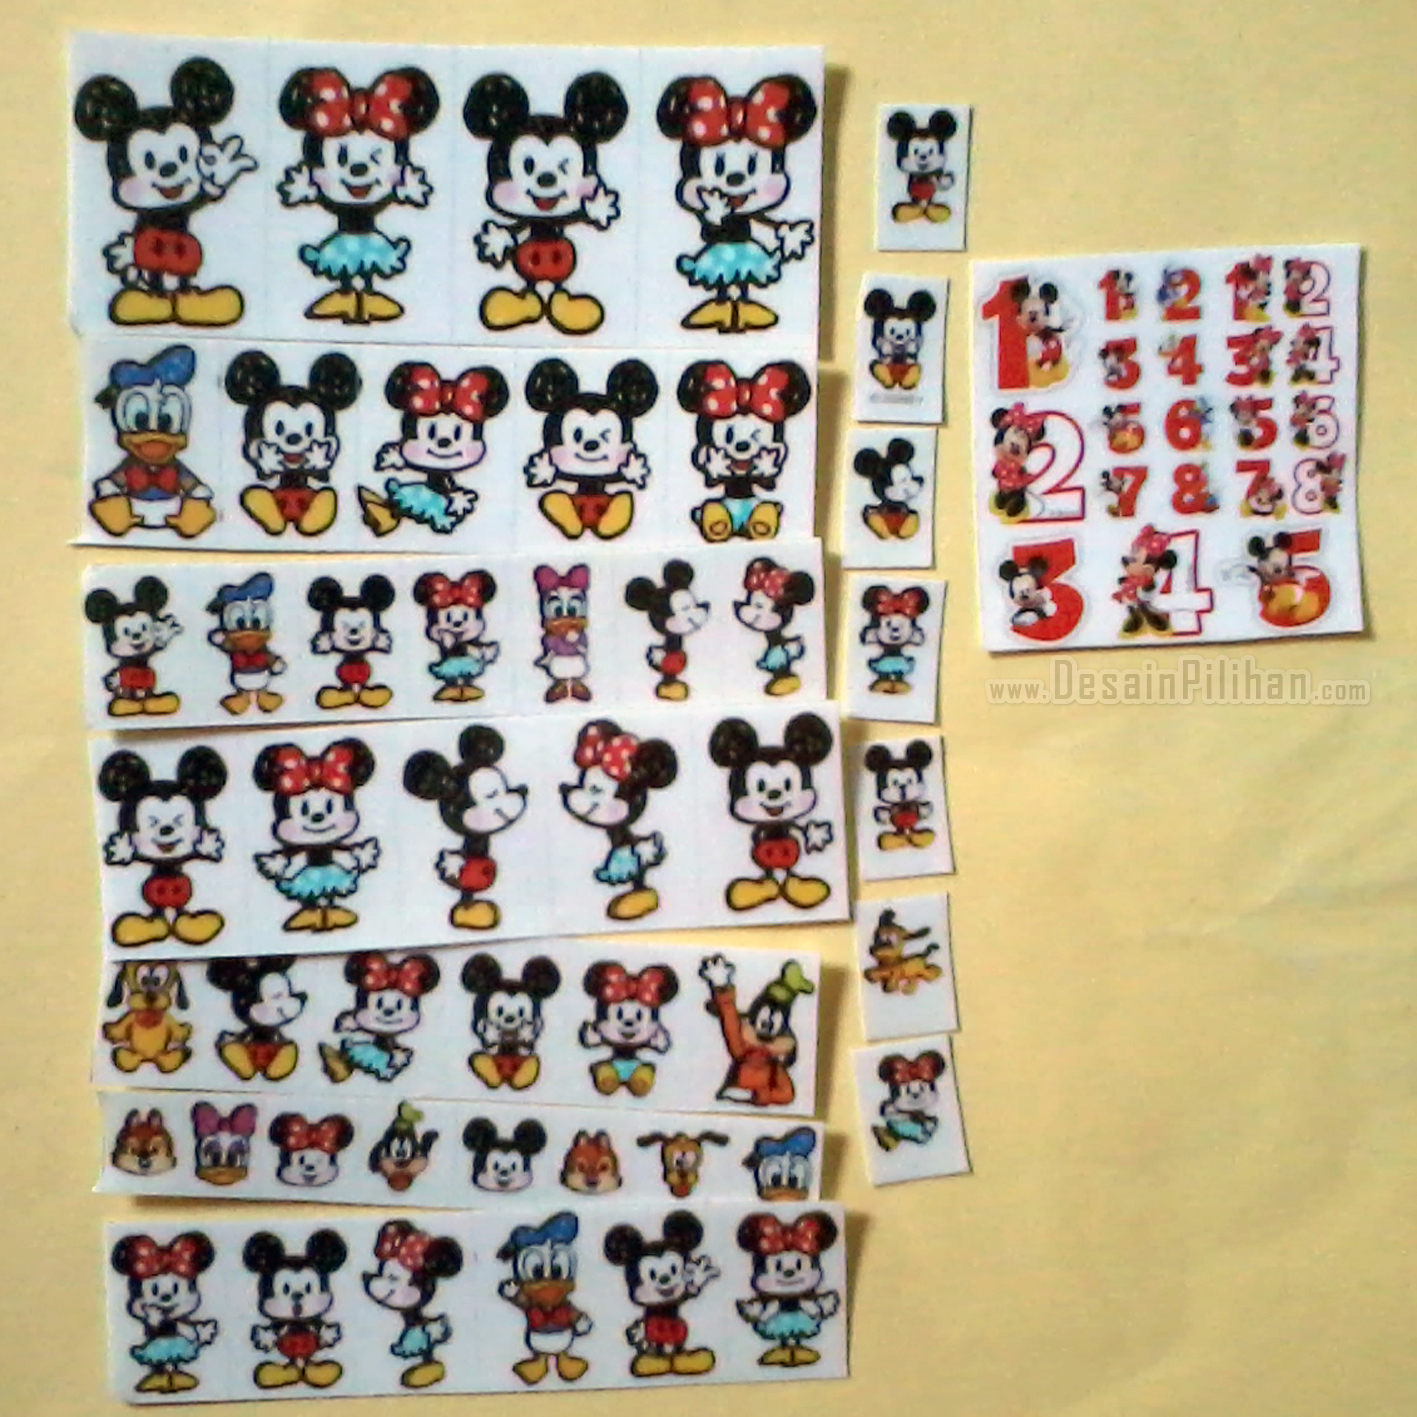 CUTTING STICKER TRANSPARAN CUSTOM, CUTTING STICKER MICKEY MOUSE, STICKER MINNIE MOUSE